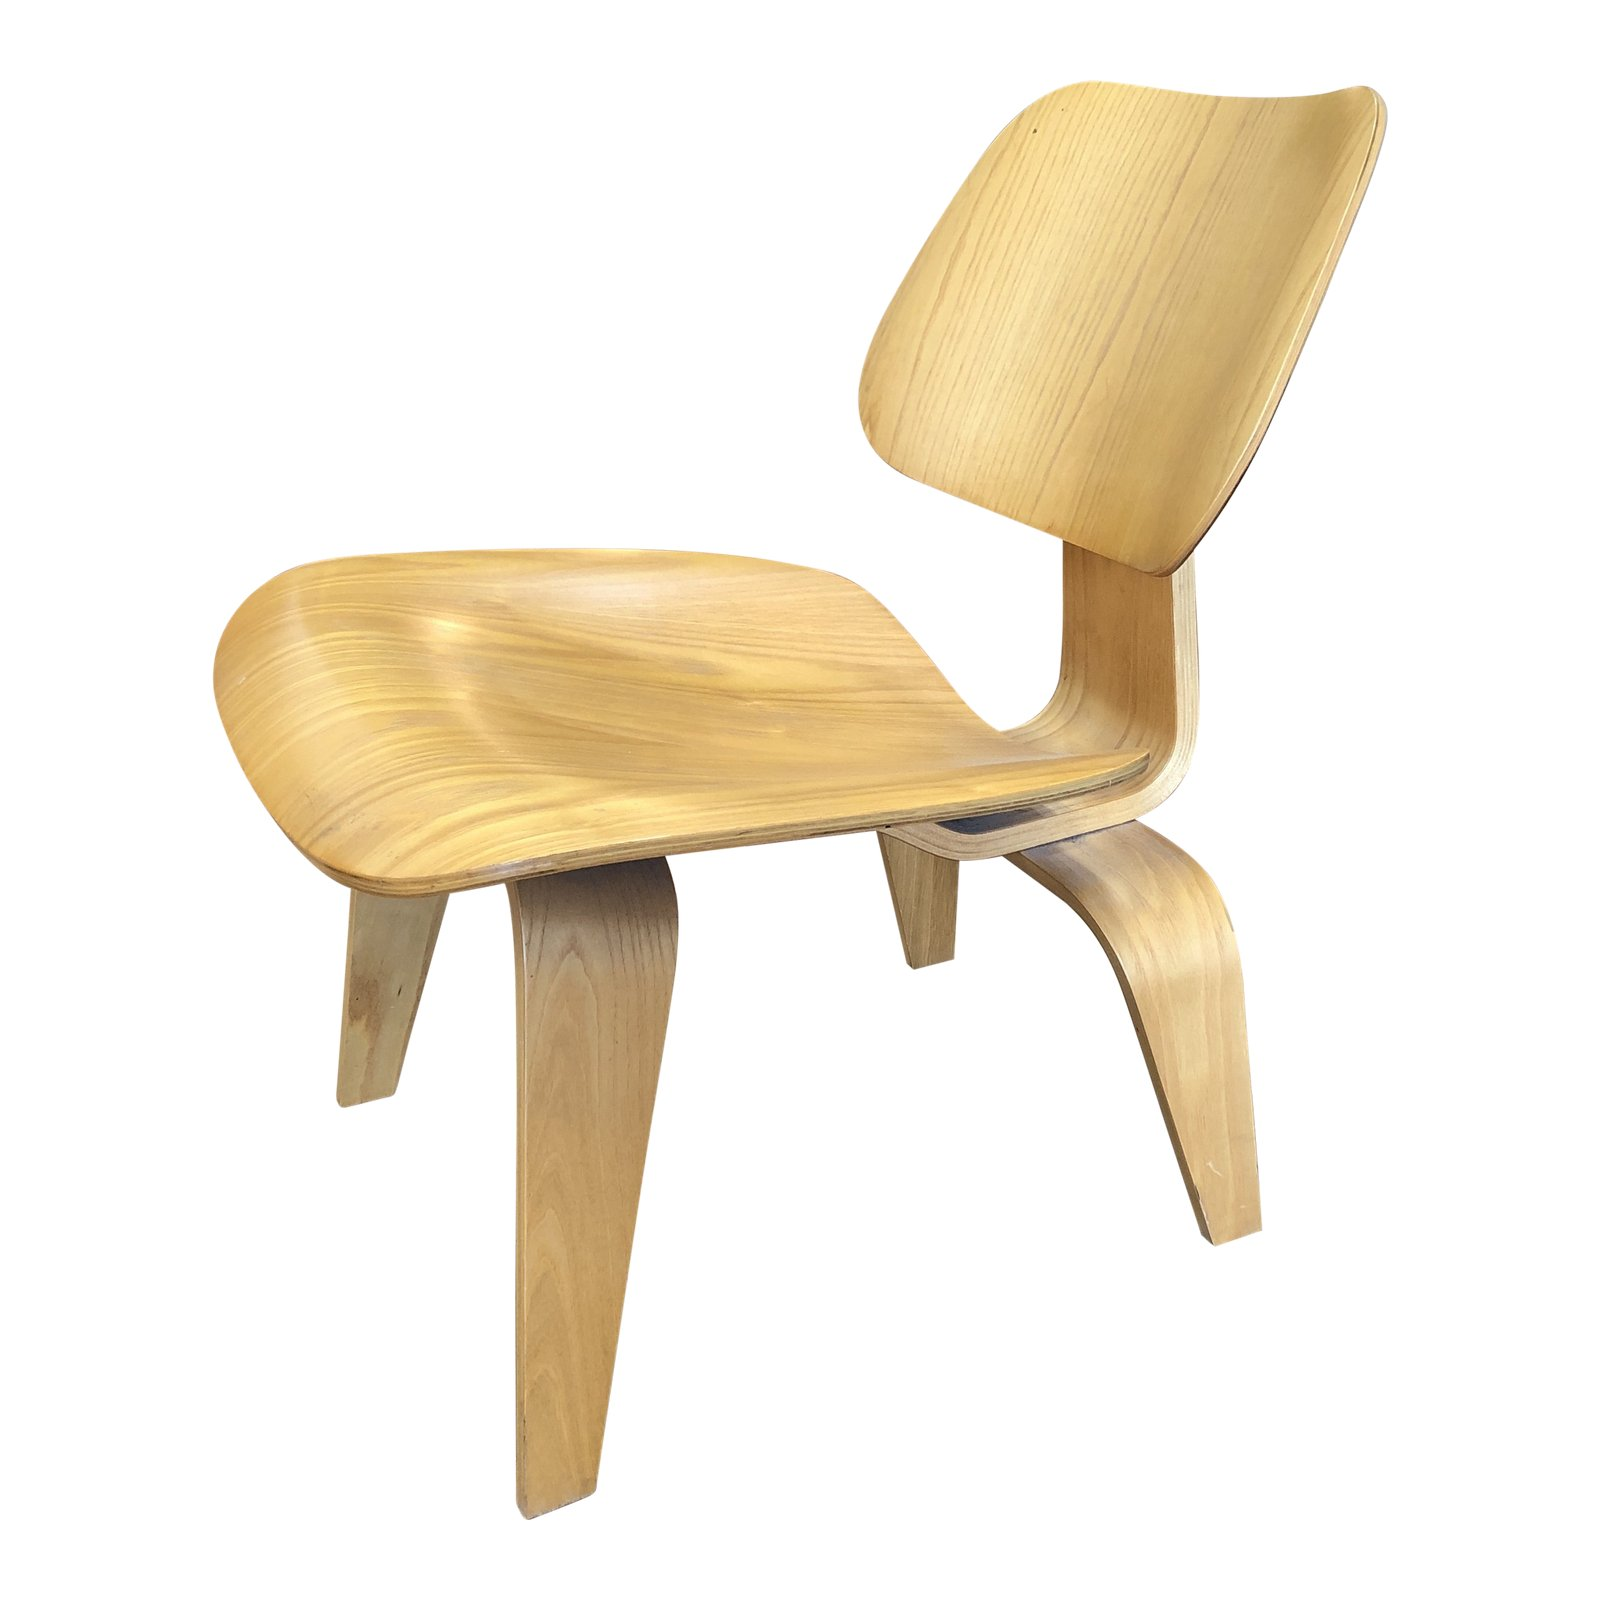 Charles Eames Stuhl Original Herman Miller Eames Molded Plywood Lounge Chair Original Price